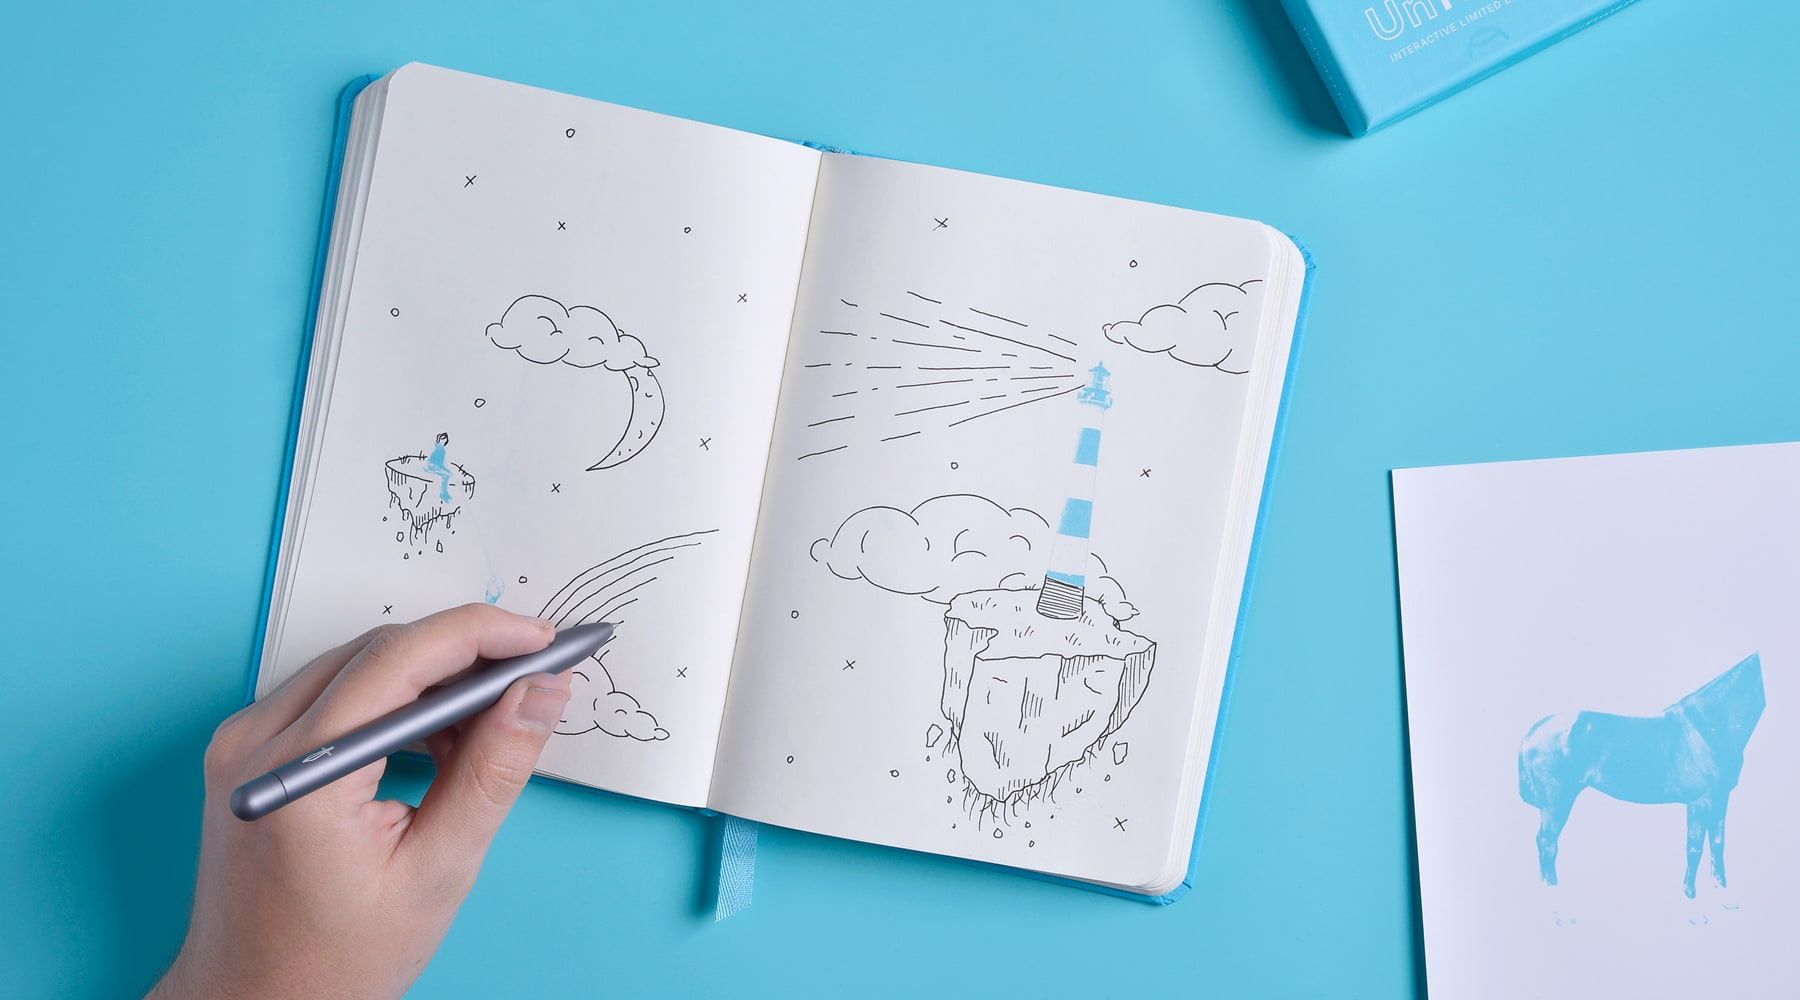 Open Unfinish notebook with drawing.